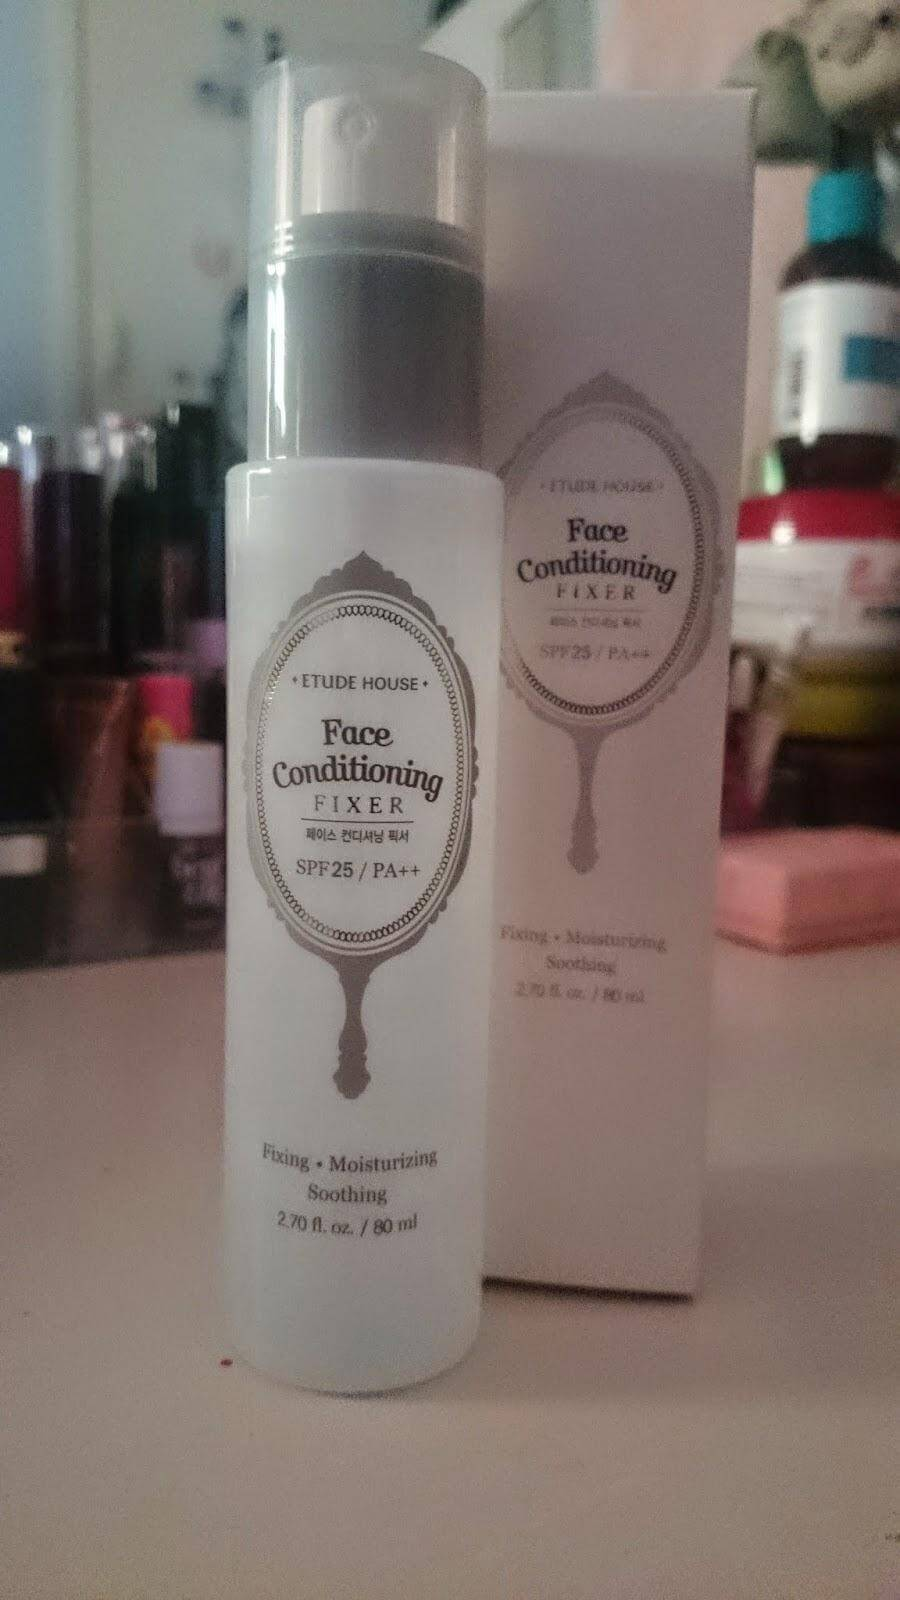 xit-khoang-duong-etude-house-face-face-conditioning-fixer-01